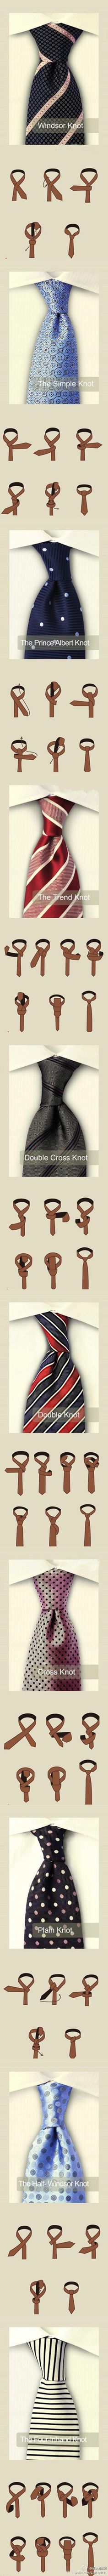 another tie tie guide :)